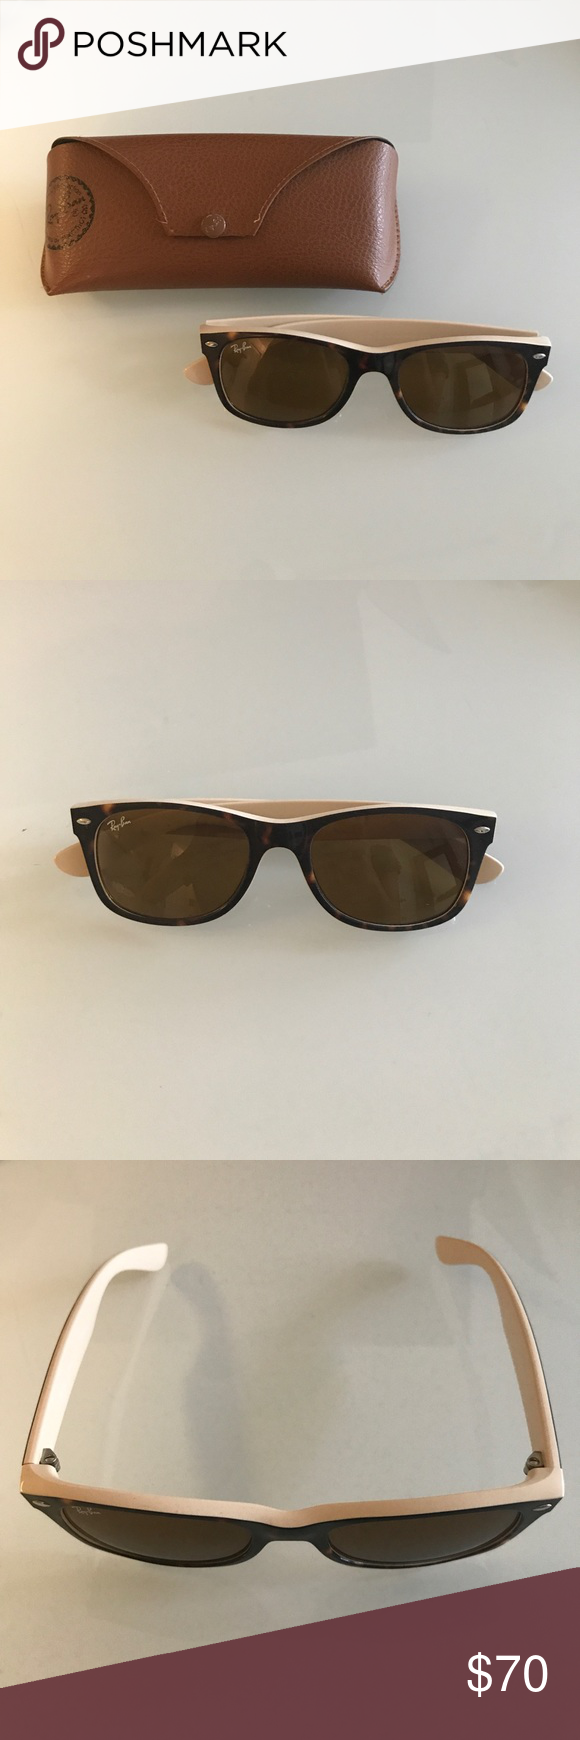 New cheap ray ban sunglasses amazon online 2019